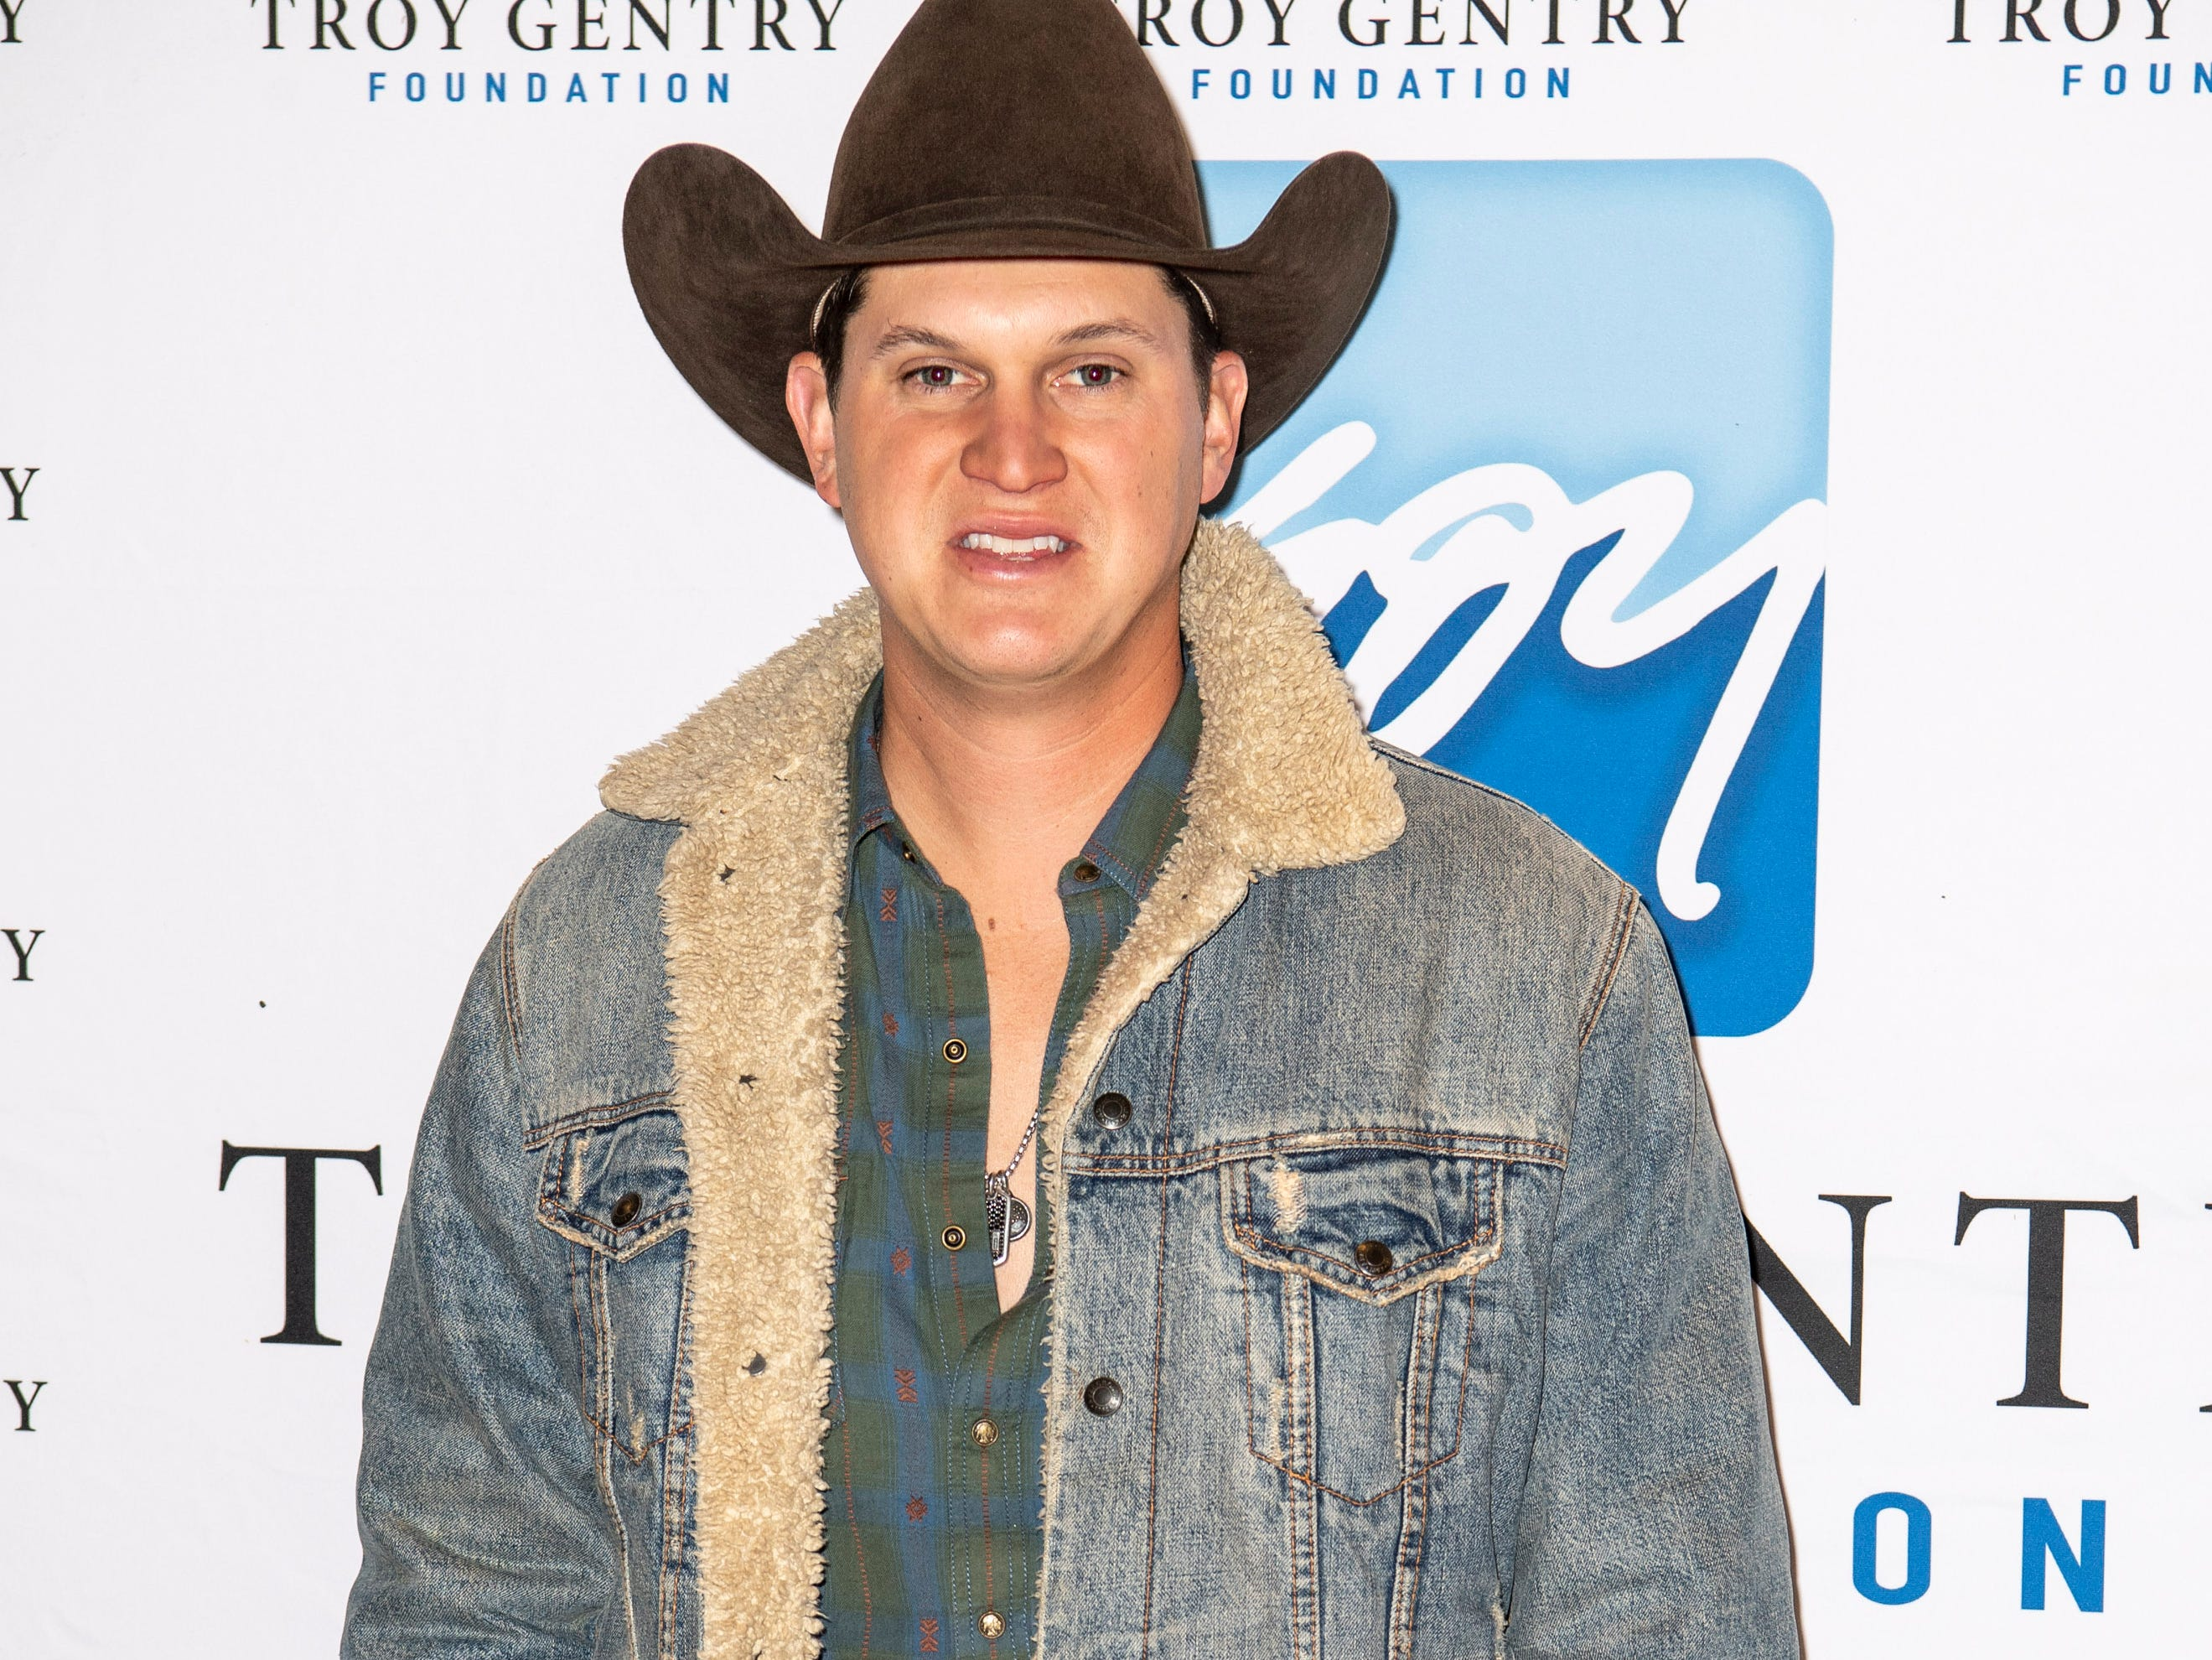 Jon Pardi on the red carpet before the C'Ya On The Flipside Benefit Concert at the Grand Ole Opry House in Nashville, Tenn., Wednesday, Jan. 9, 2019.